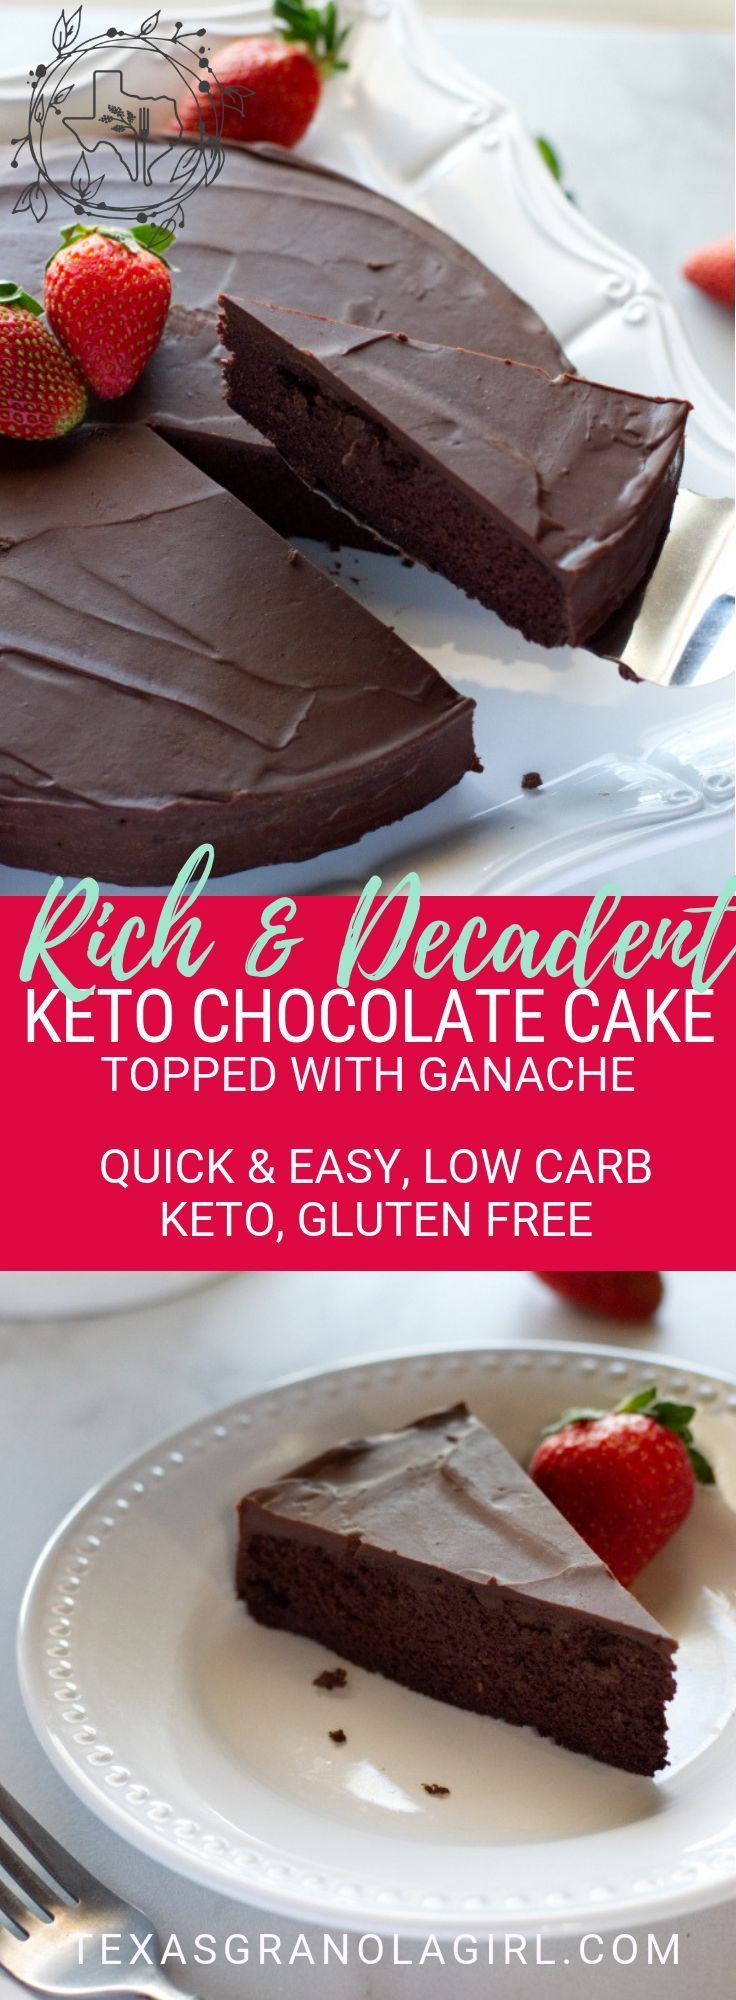 Keto Chocolate Cake with Ganache If you are a chocolate lover like me, this Keto Chocolate Cake topped with Ganache is going to be your new obsession! Intense, rich and decadent…everything you dream of in the perfect chocolate cake…and to top it off, it's gluten free, grain free and low carb! Perfect for Valentine's Day or any special occasion when nothing but chocolate will do! Low carb, gluten free and keto friendly!